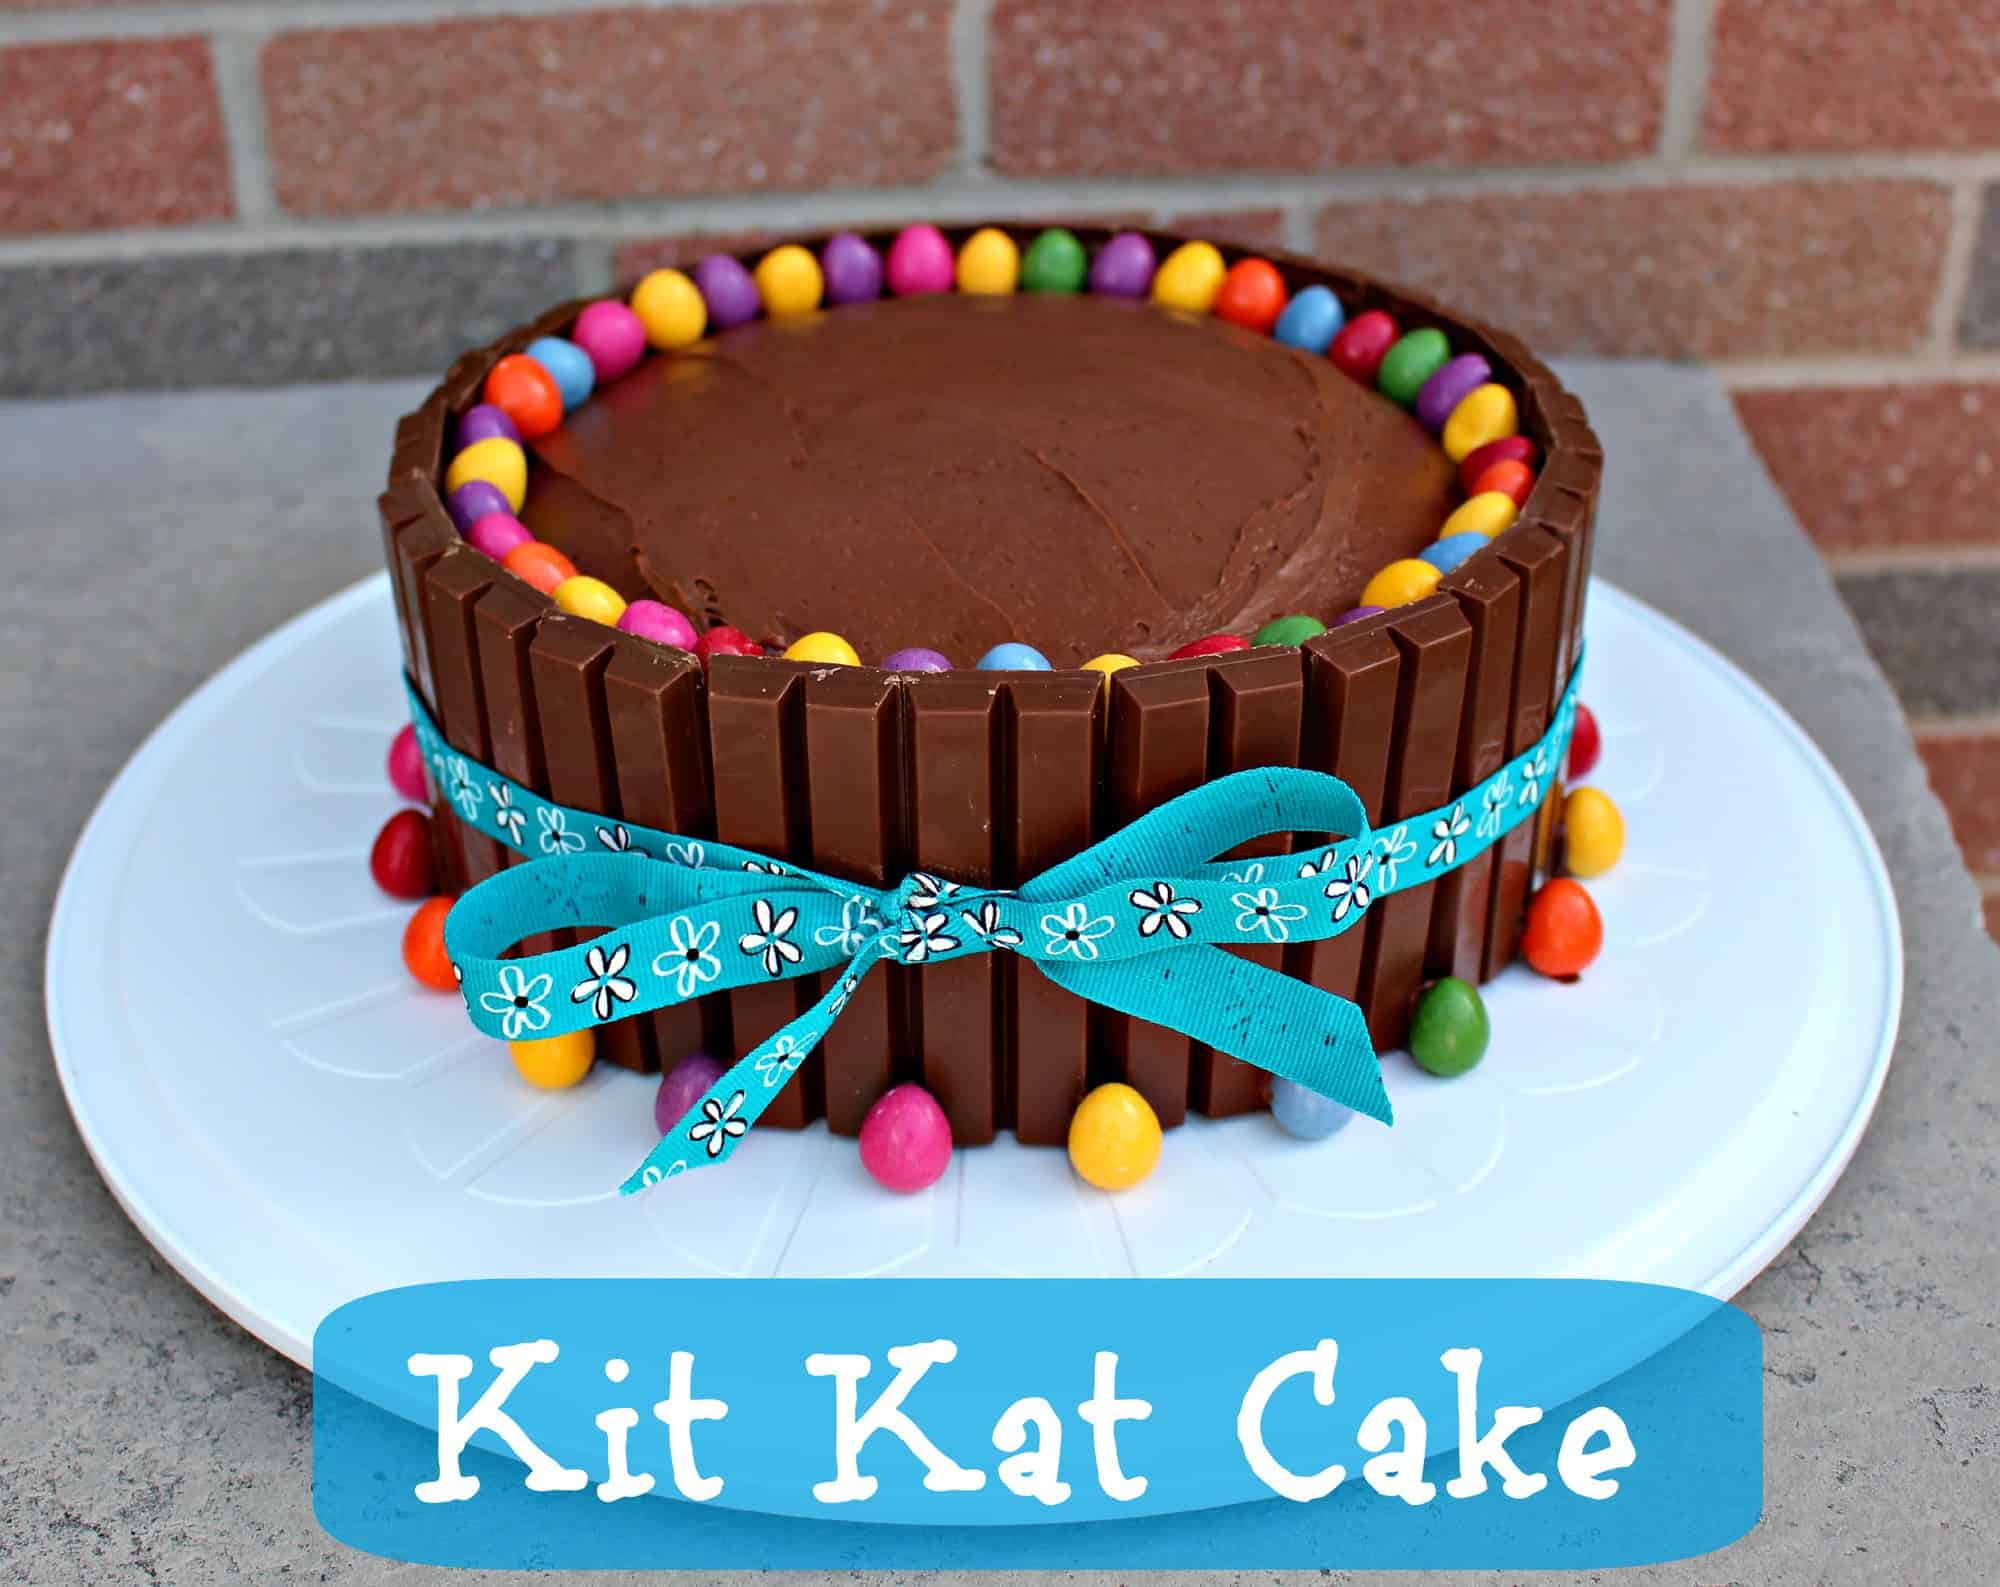 Easter Kit Kat Cake - Easter Dessert Idea via LittleMissKate.ca